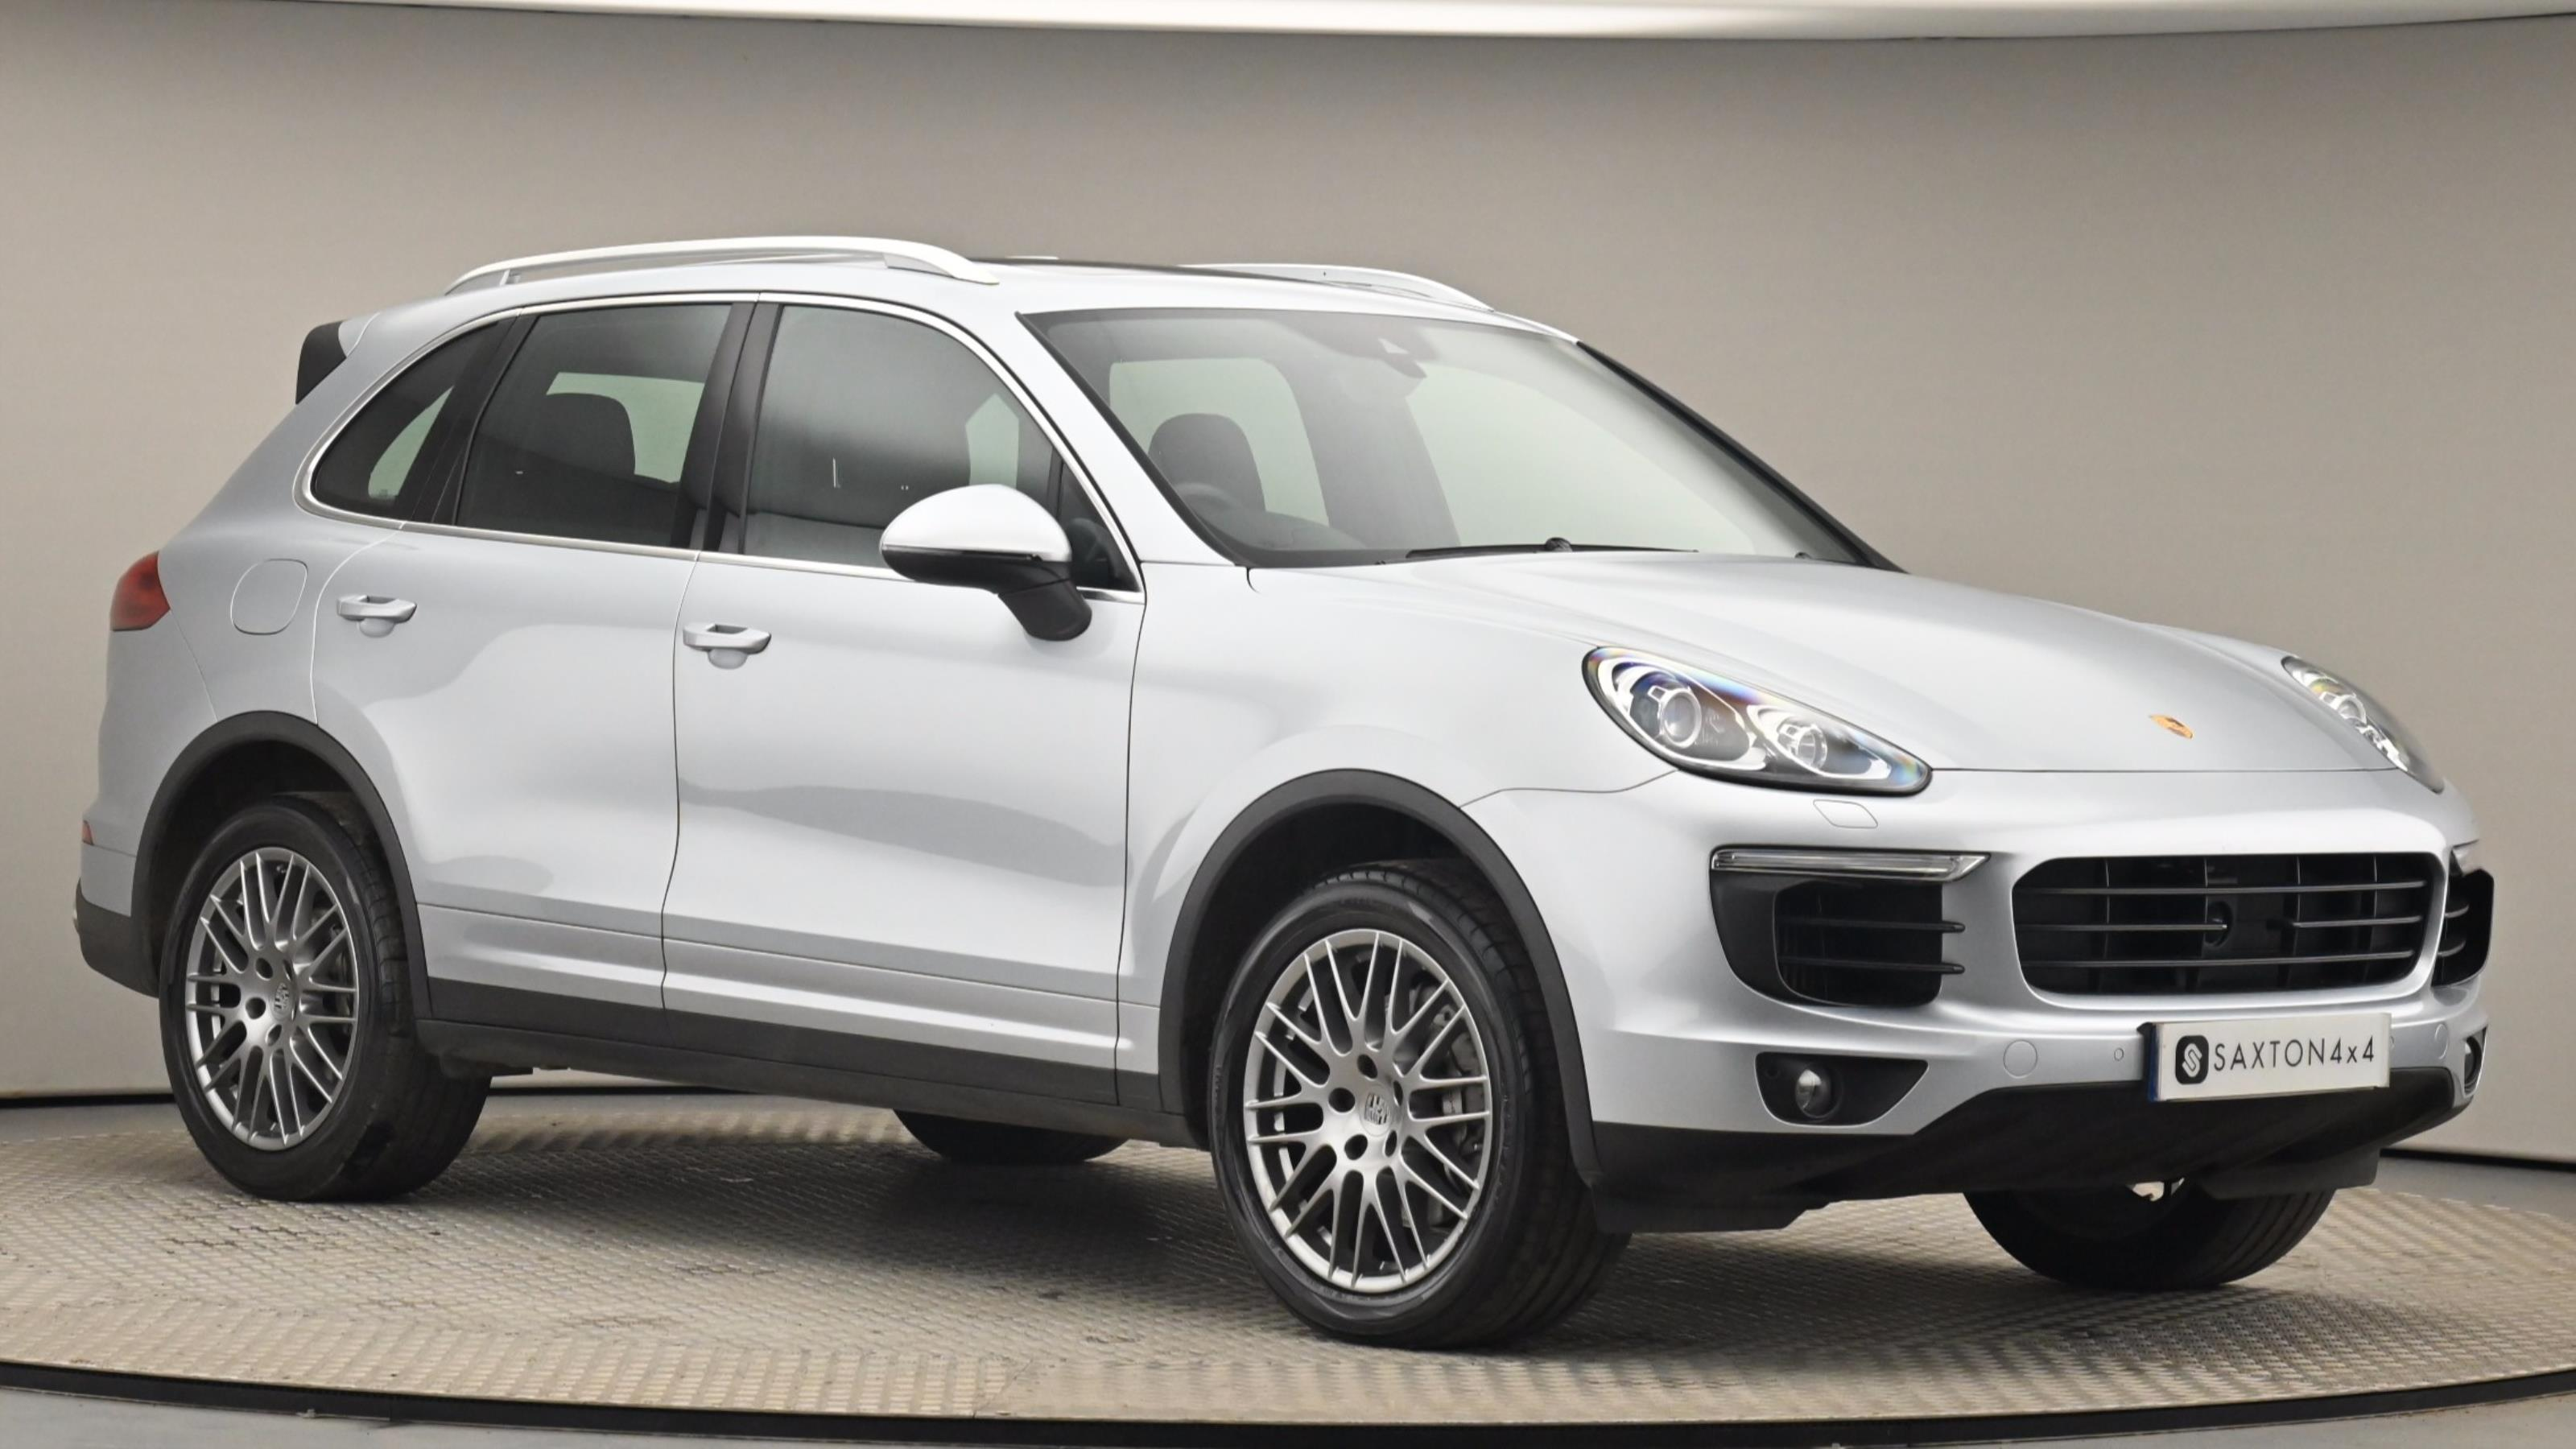 Used 2015 Porsche CAYENNE S 5dr Tiptronic S SILVER at Saxton4x4